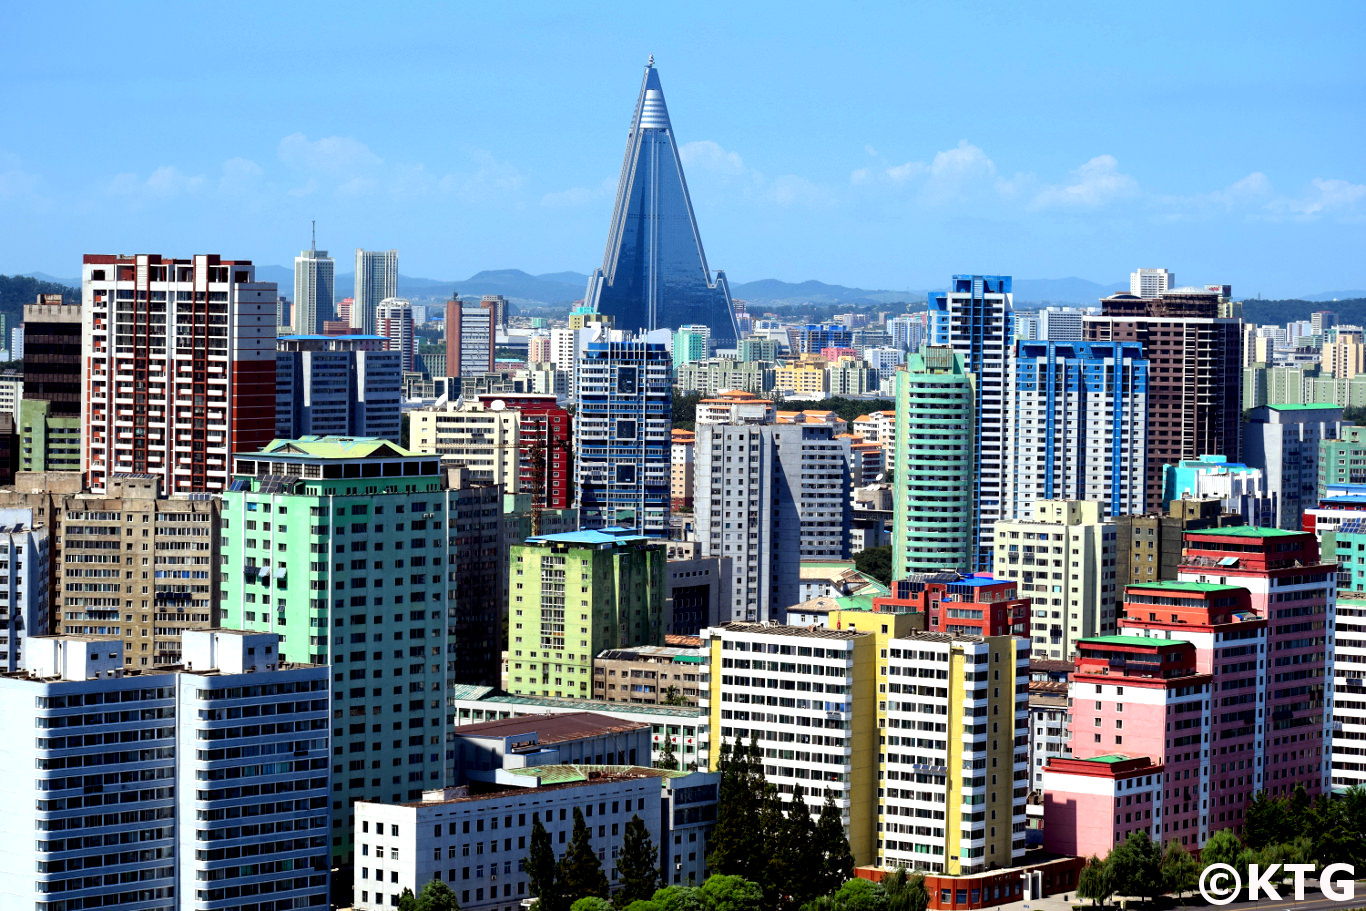 Pride of the DPRK. The Ryugyong hotel stands out in the Pyongyang skyline. Picture taken by KTG Tours